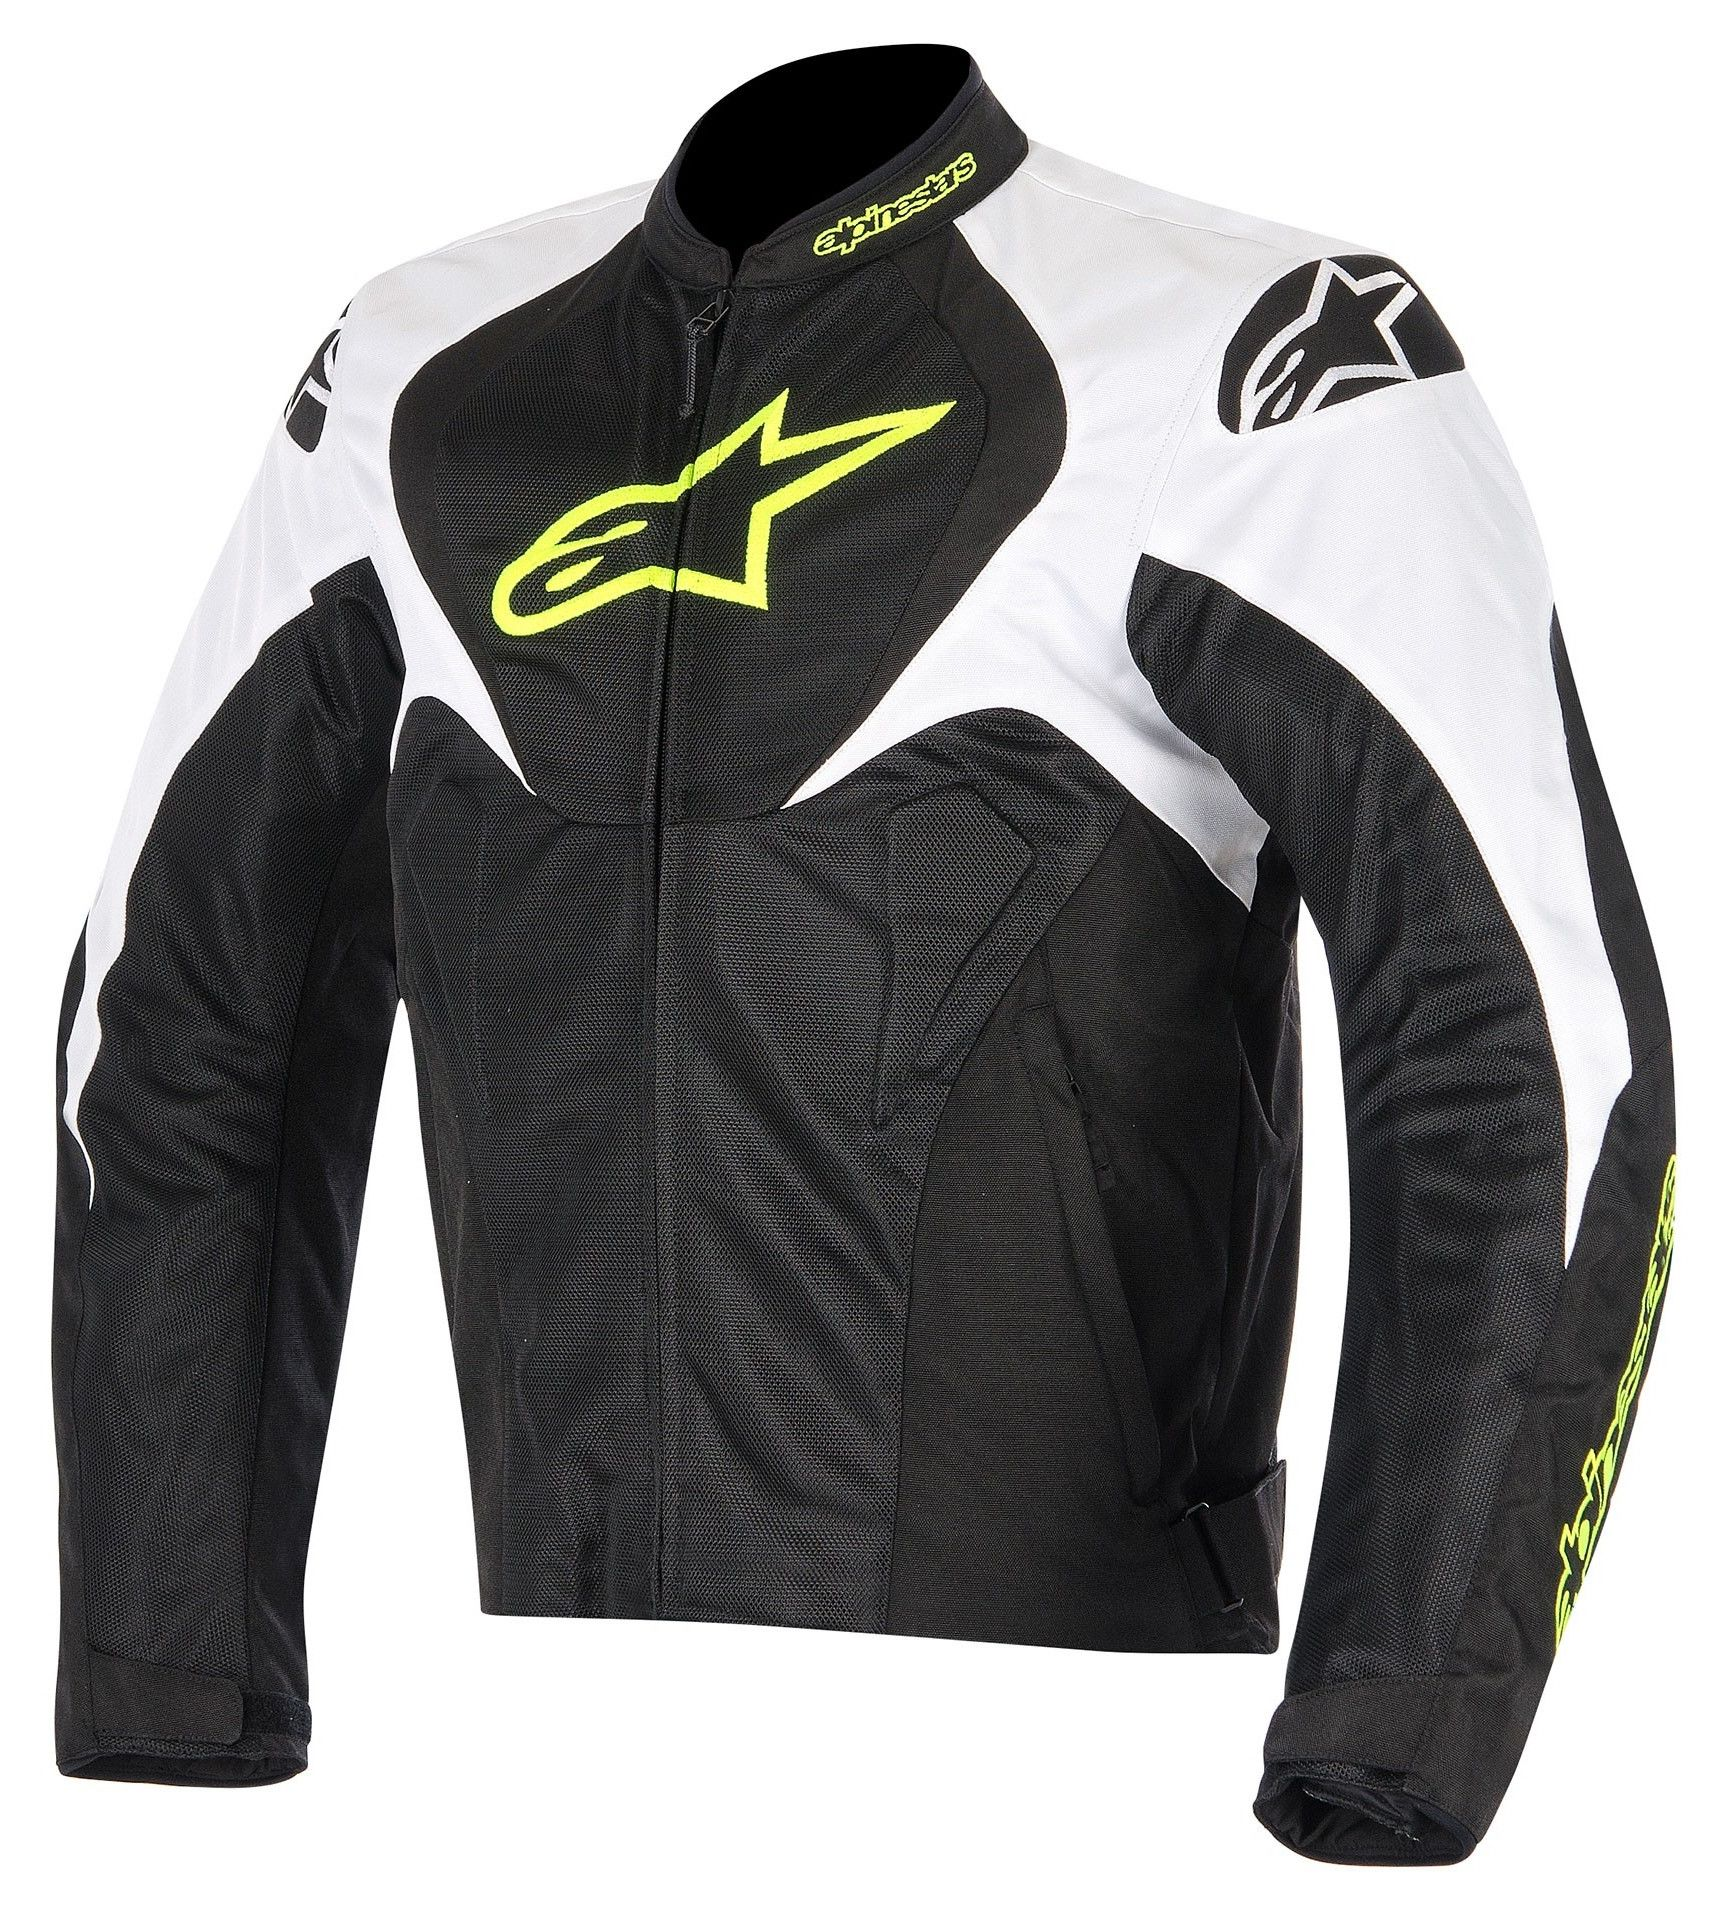 Discount Motorcycle Jackets Cycle Gear